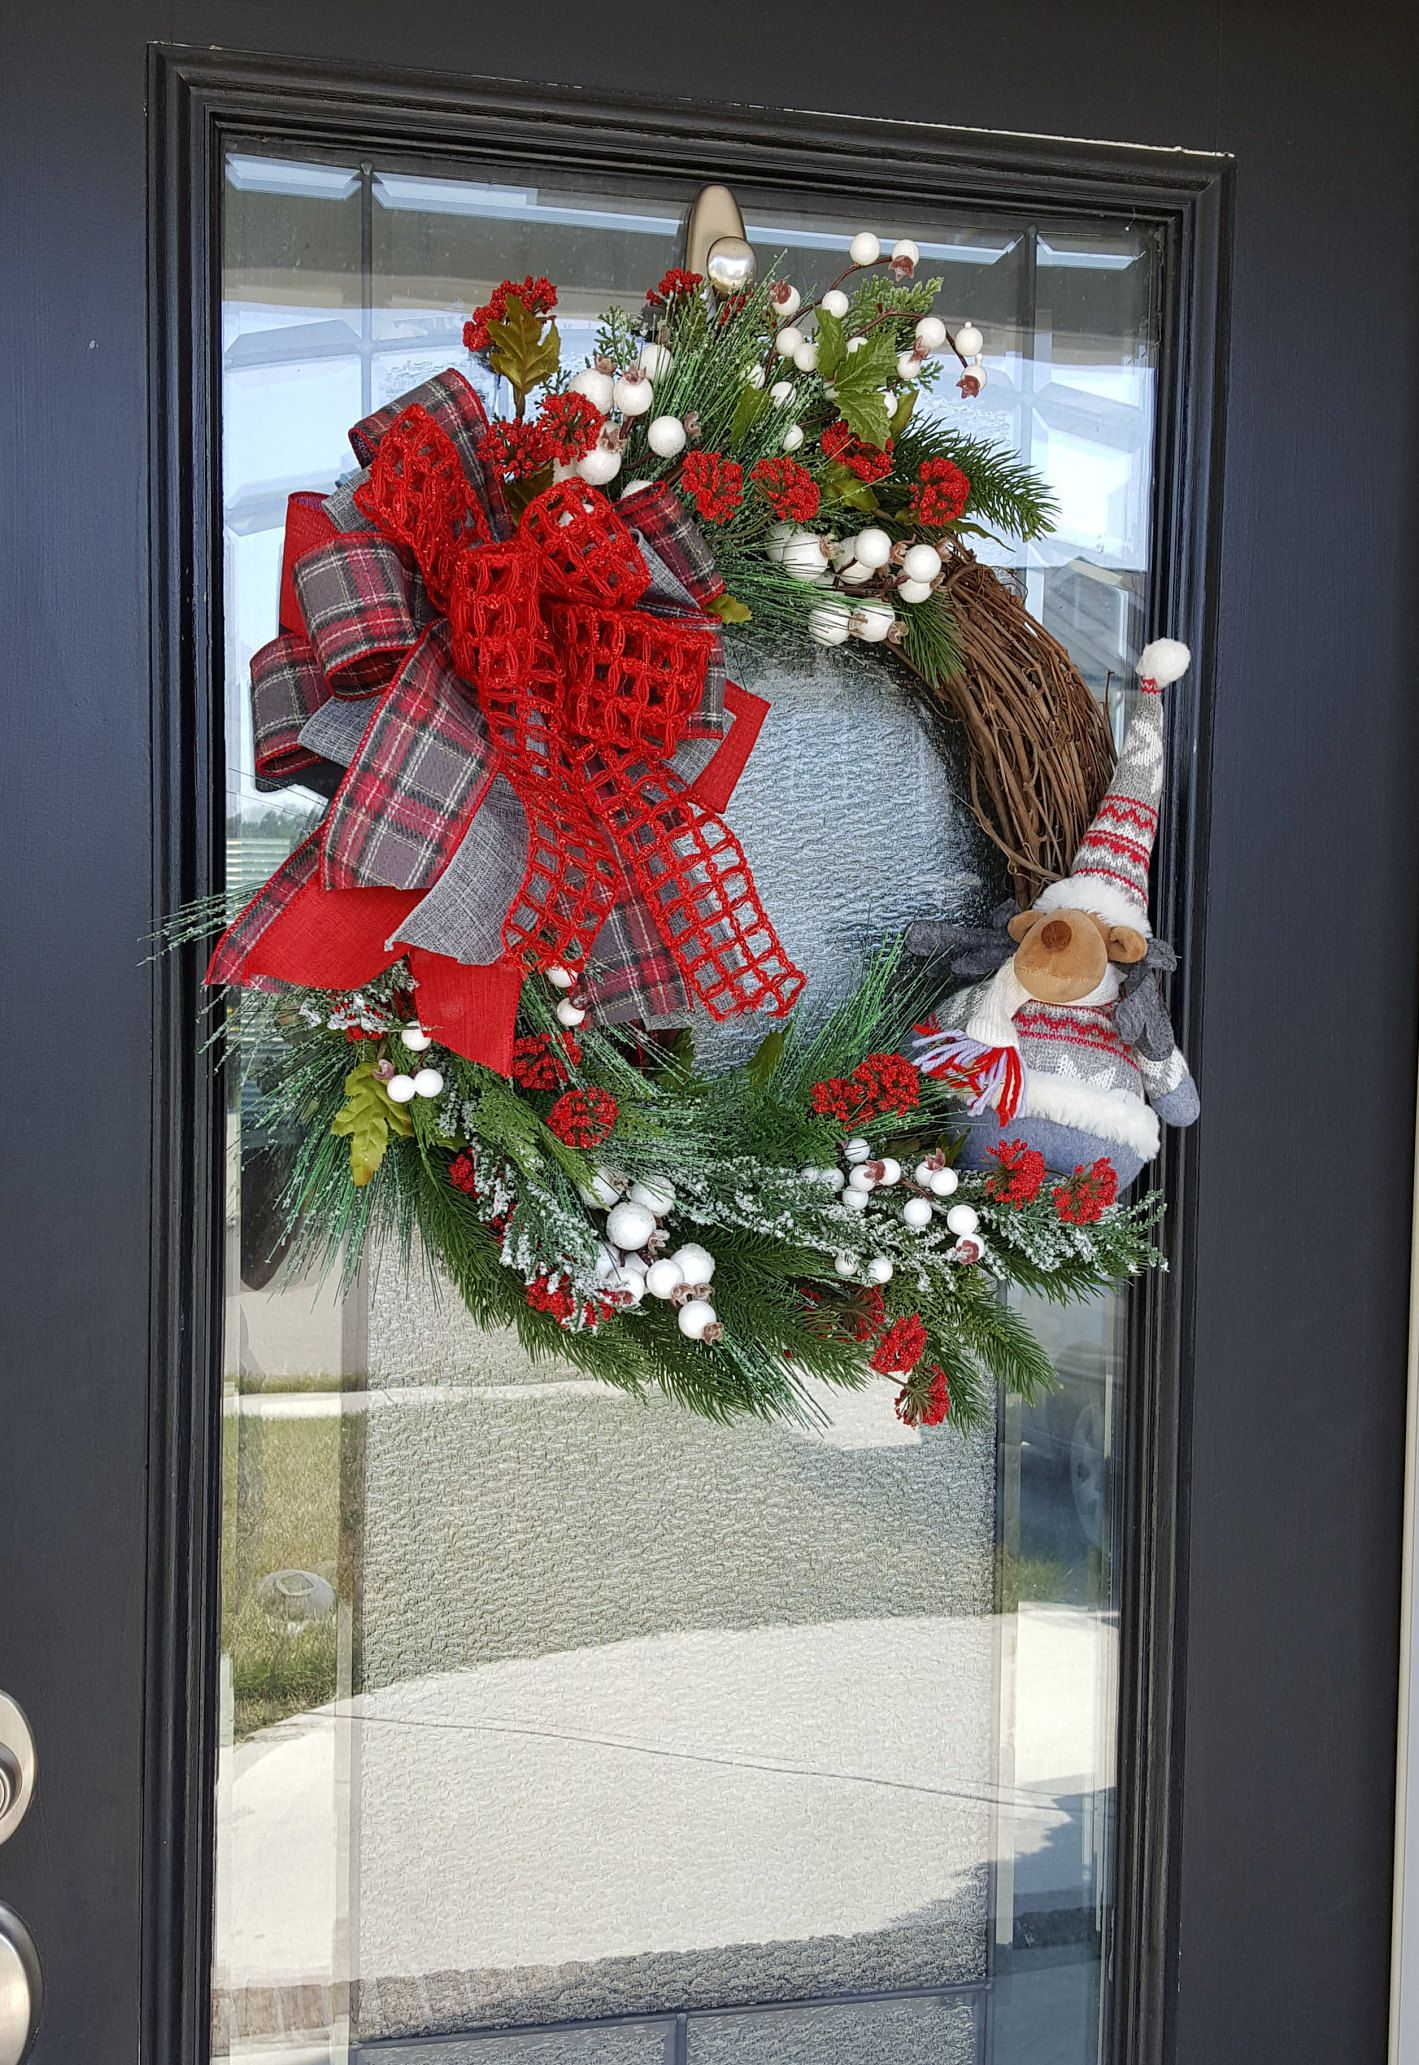 Photo of Farmhouse Grapevine Wreath with Moose, Rustic Design with Berries, Wreath with Bow, Winter Lodge Decor, Deer Wreath, Holiday Wreath